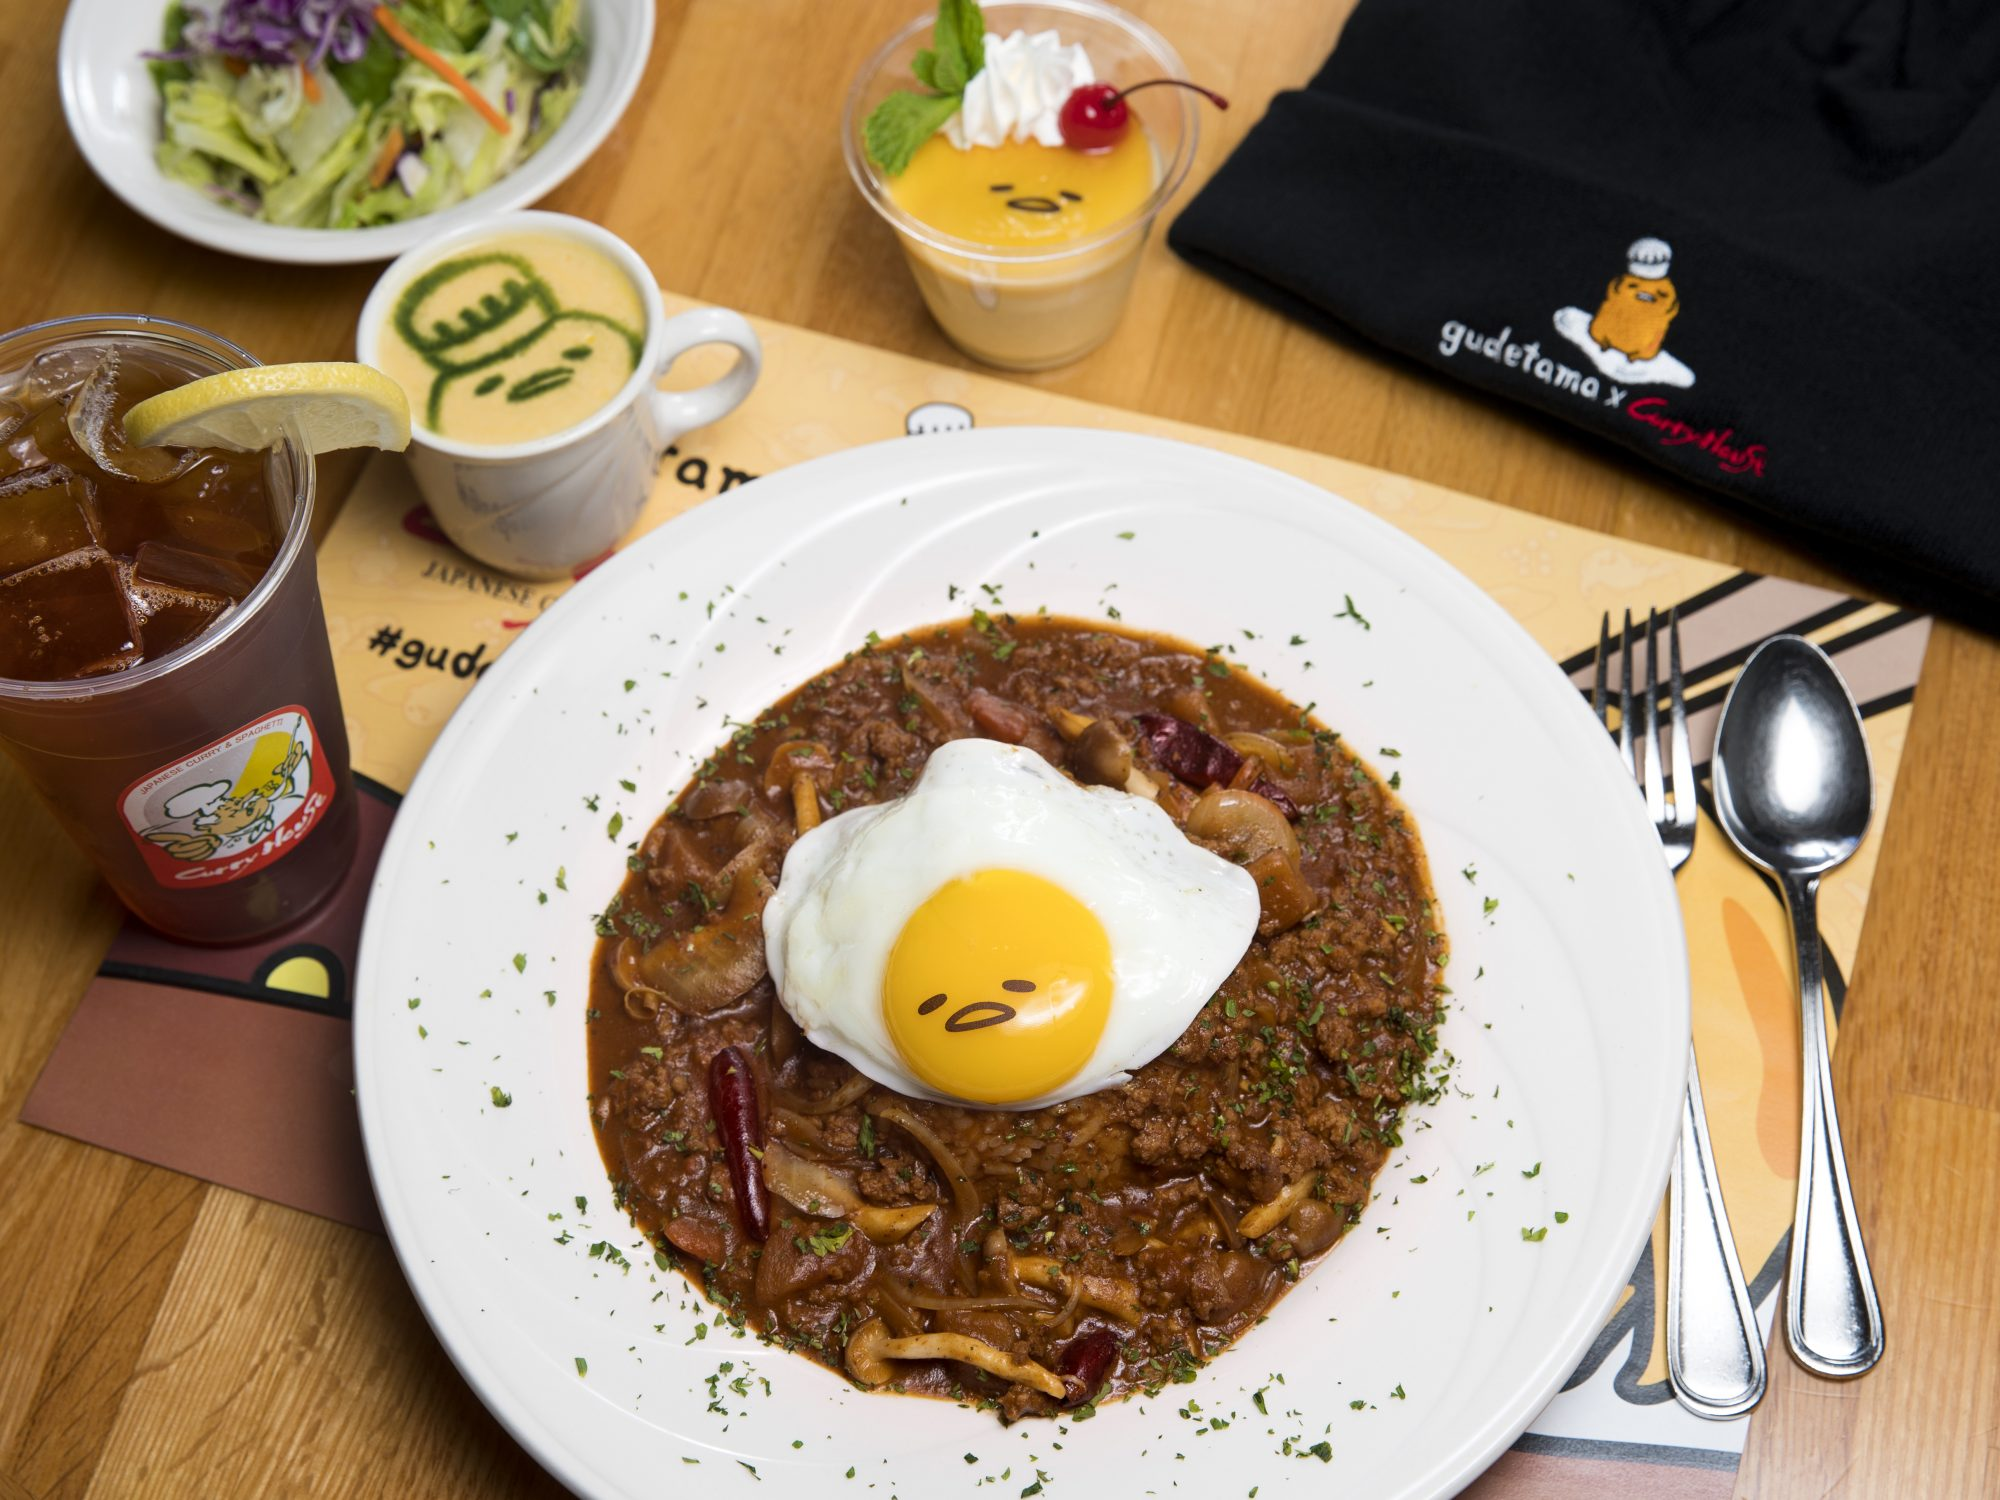 gudetama-curry-FT-BLOG1017.jpeg